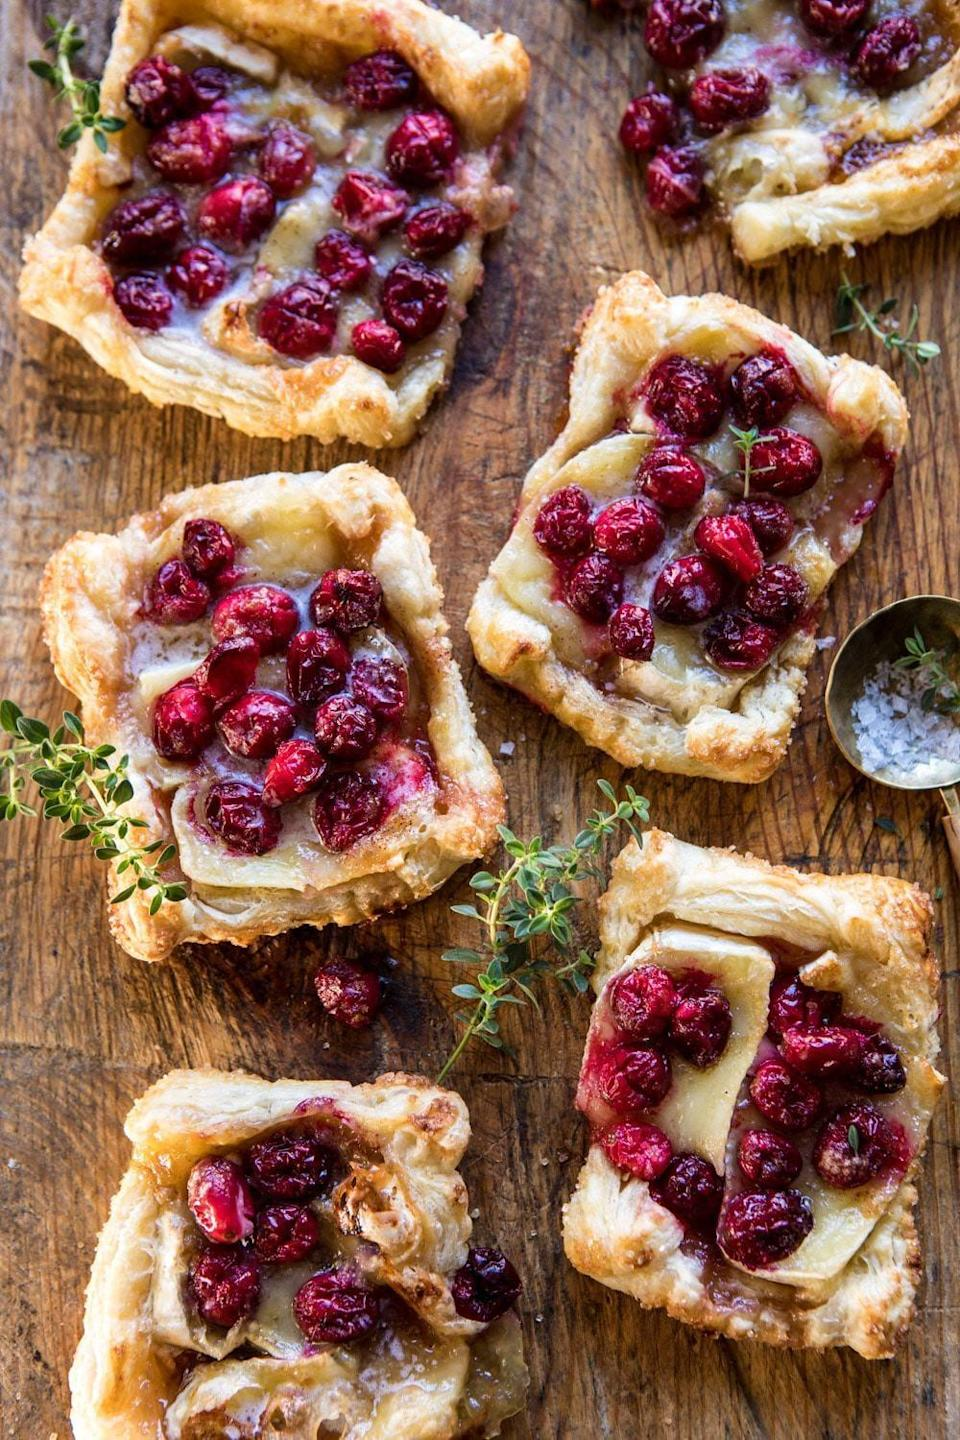 "<p>Quick, easy, and a fan favorite, these tarts are too good to be true. Creamy brie, tangy cranberries, and a fluffy puff pastry work together to make these cheese-filled tarts ready to be served in no time. Since this recipe is made to make 12 servings, you can either freeze them for later, give a couple to your family, or warm them up for days to come.</p> <p><strong>Get the recipe</strong>: <a href=""https://www.halfbakedharvest.com/cranberry-brie-pastry-tarts/"" class=""link rapid-noclick-resp"" rel=""nofollow noopener"" target=""_blank"" data-ylk=""slk:cranberry brie pastry tarts"">cranberry brie pastry tarts</a></p>"